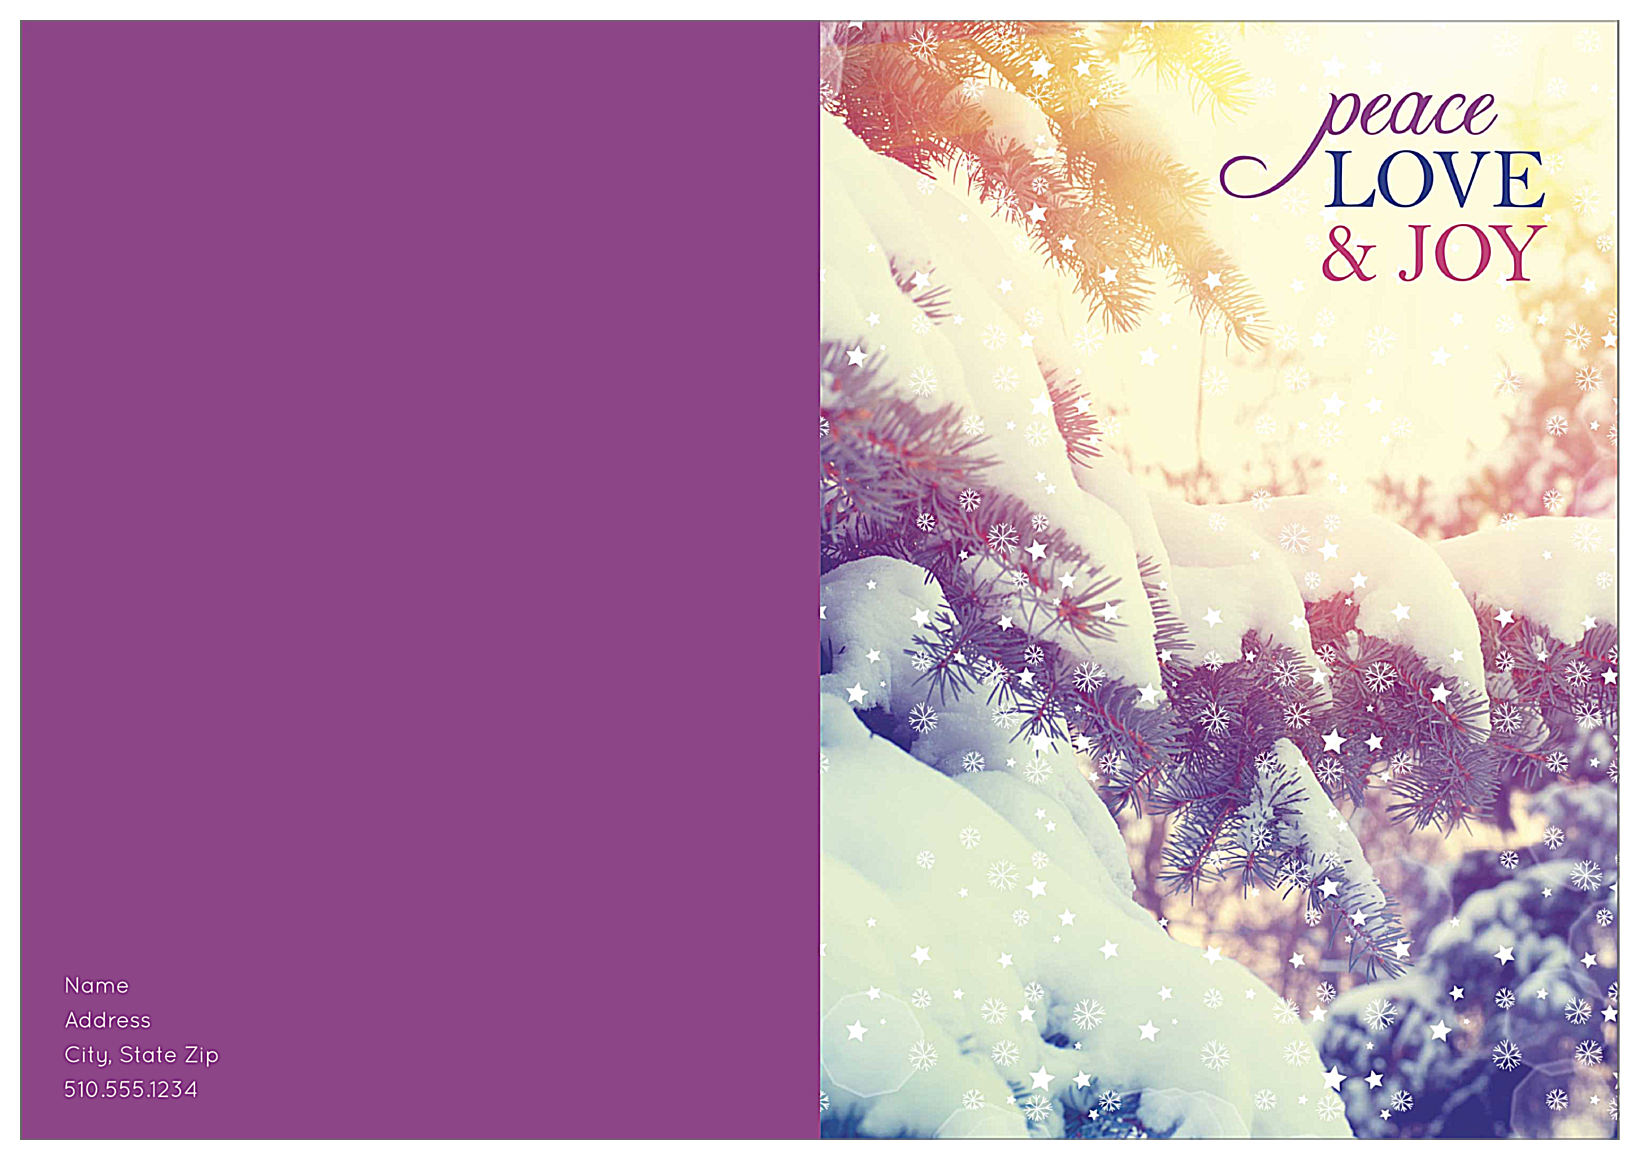 Snowy Peace front - Greeting Cards Maker